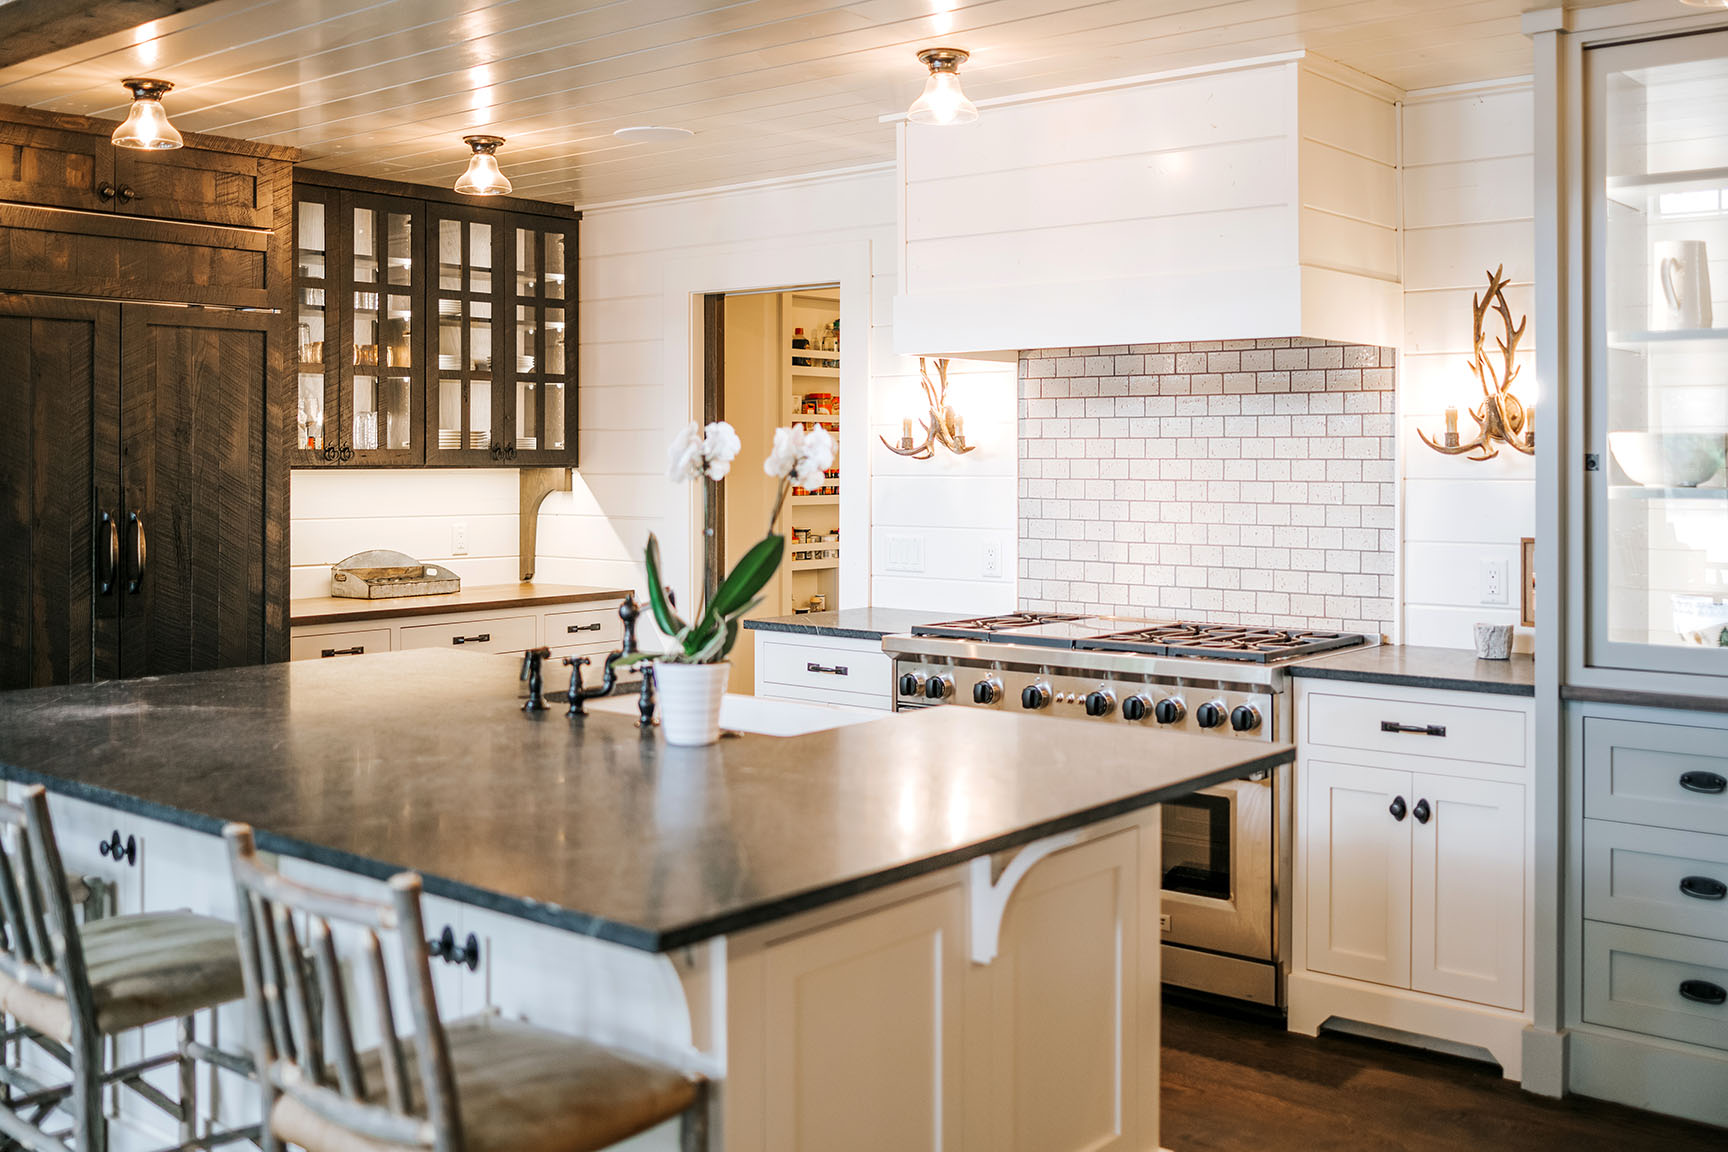 Kitchen Archives - Page 3 of 17 - Alpine Cabinetry : Alpine ...